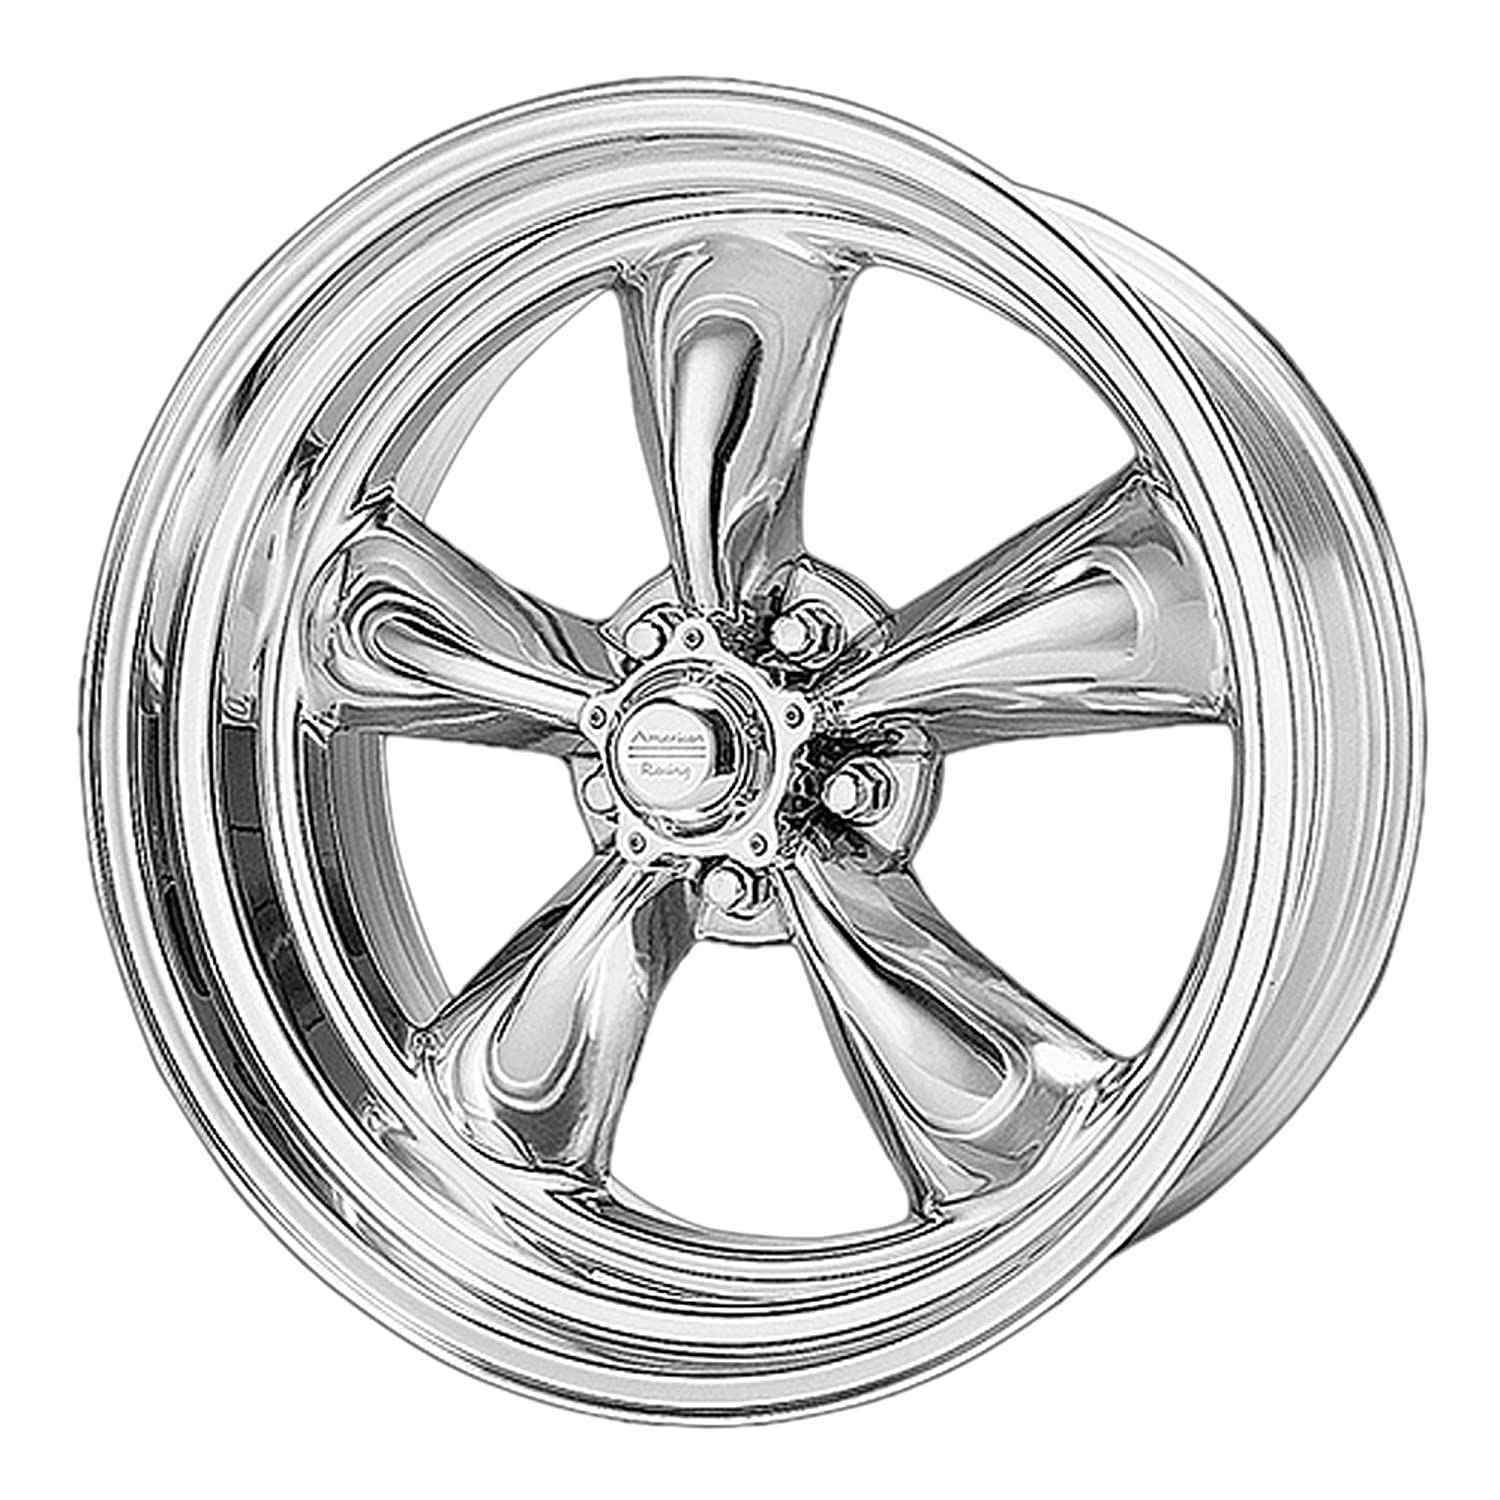 AMERICAN RACING TORQ THRUST II 1 PC POLISHED TORQ THRUST II 1 PC 18x7 5x120.65 POLISHED 6 mm WHEEL RIM